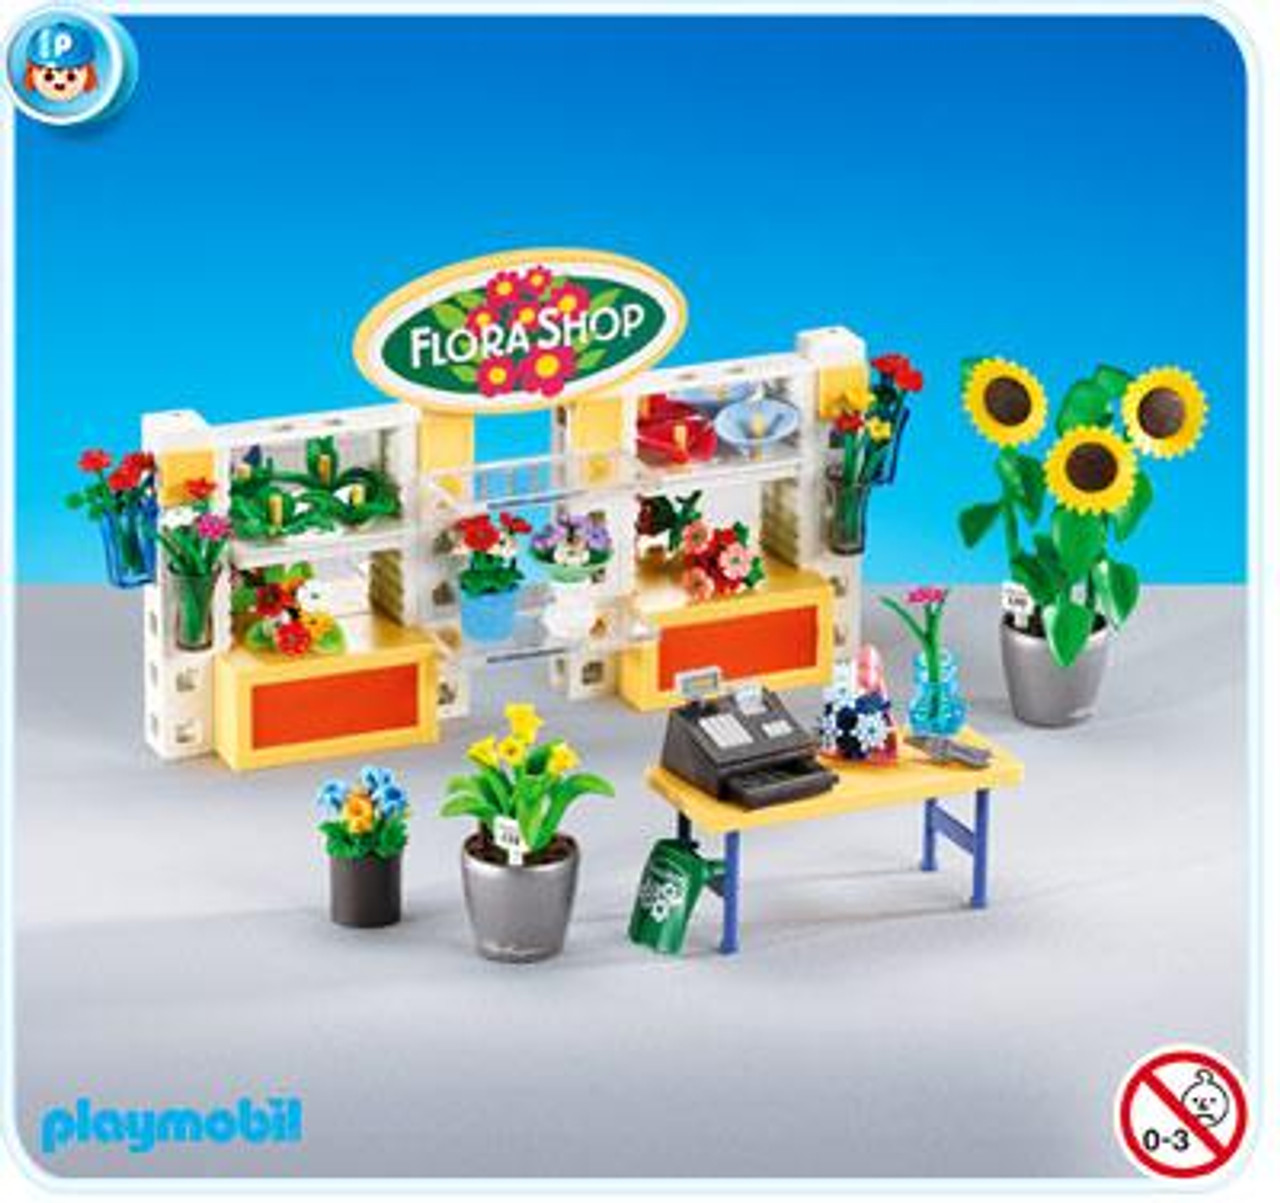 Playmobil Life In The City Flower Shop Interior Set #7496